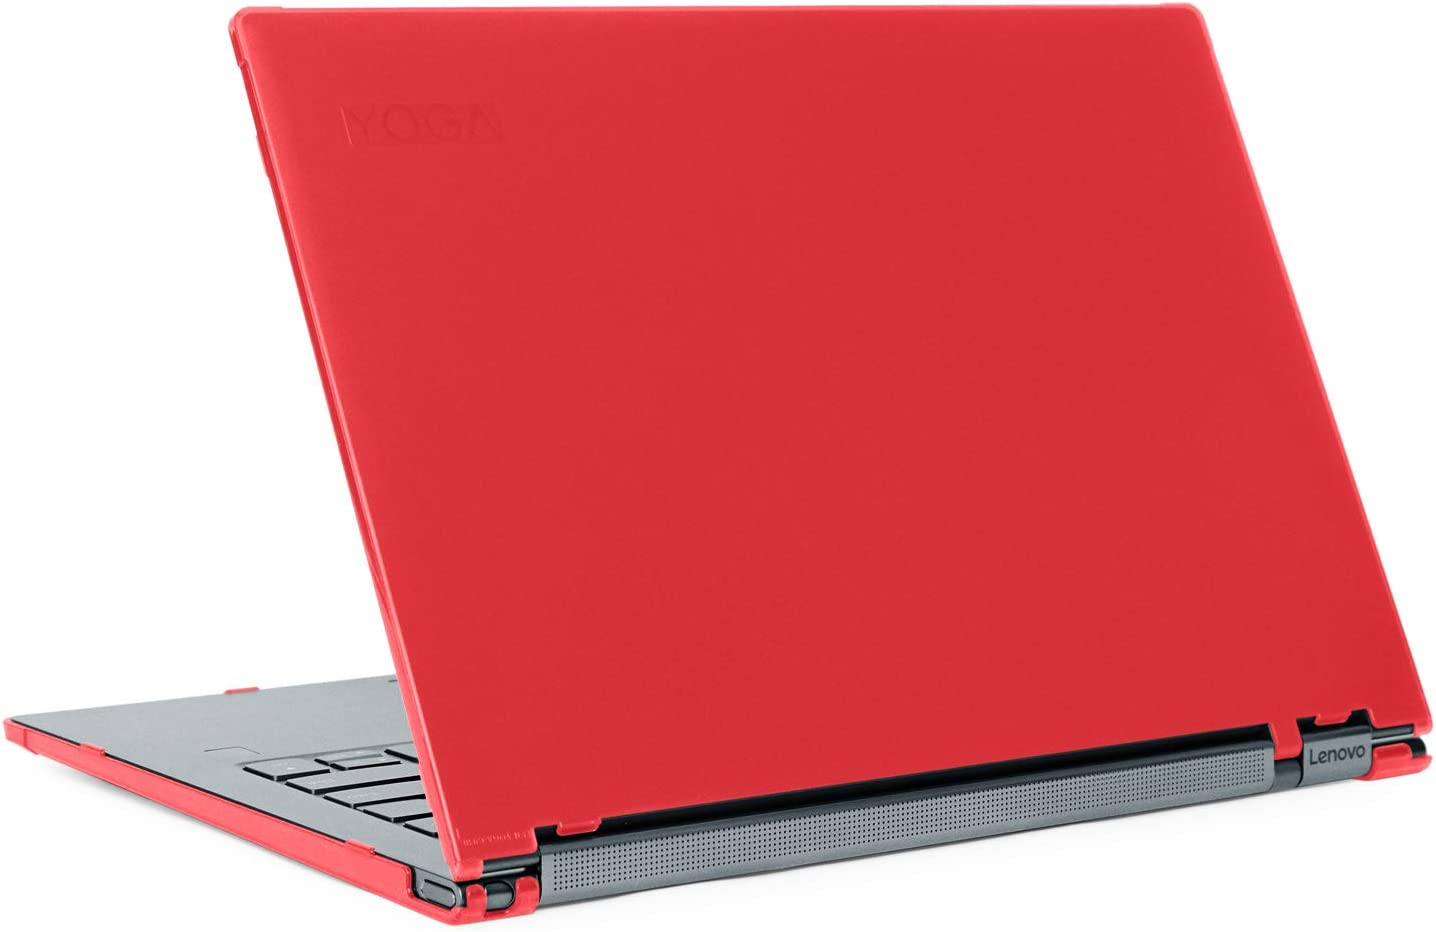 "mCover Hard Shell Case for Late-2019 14"" Lenovo Yoga C940 Series (NOT Fitting Older Yoga 900/910 / 920 / C930) multimode Laptop Computer (Yoga-C940 RED)"